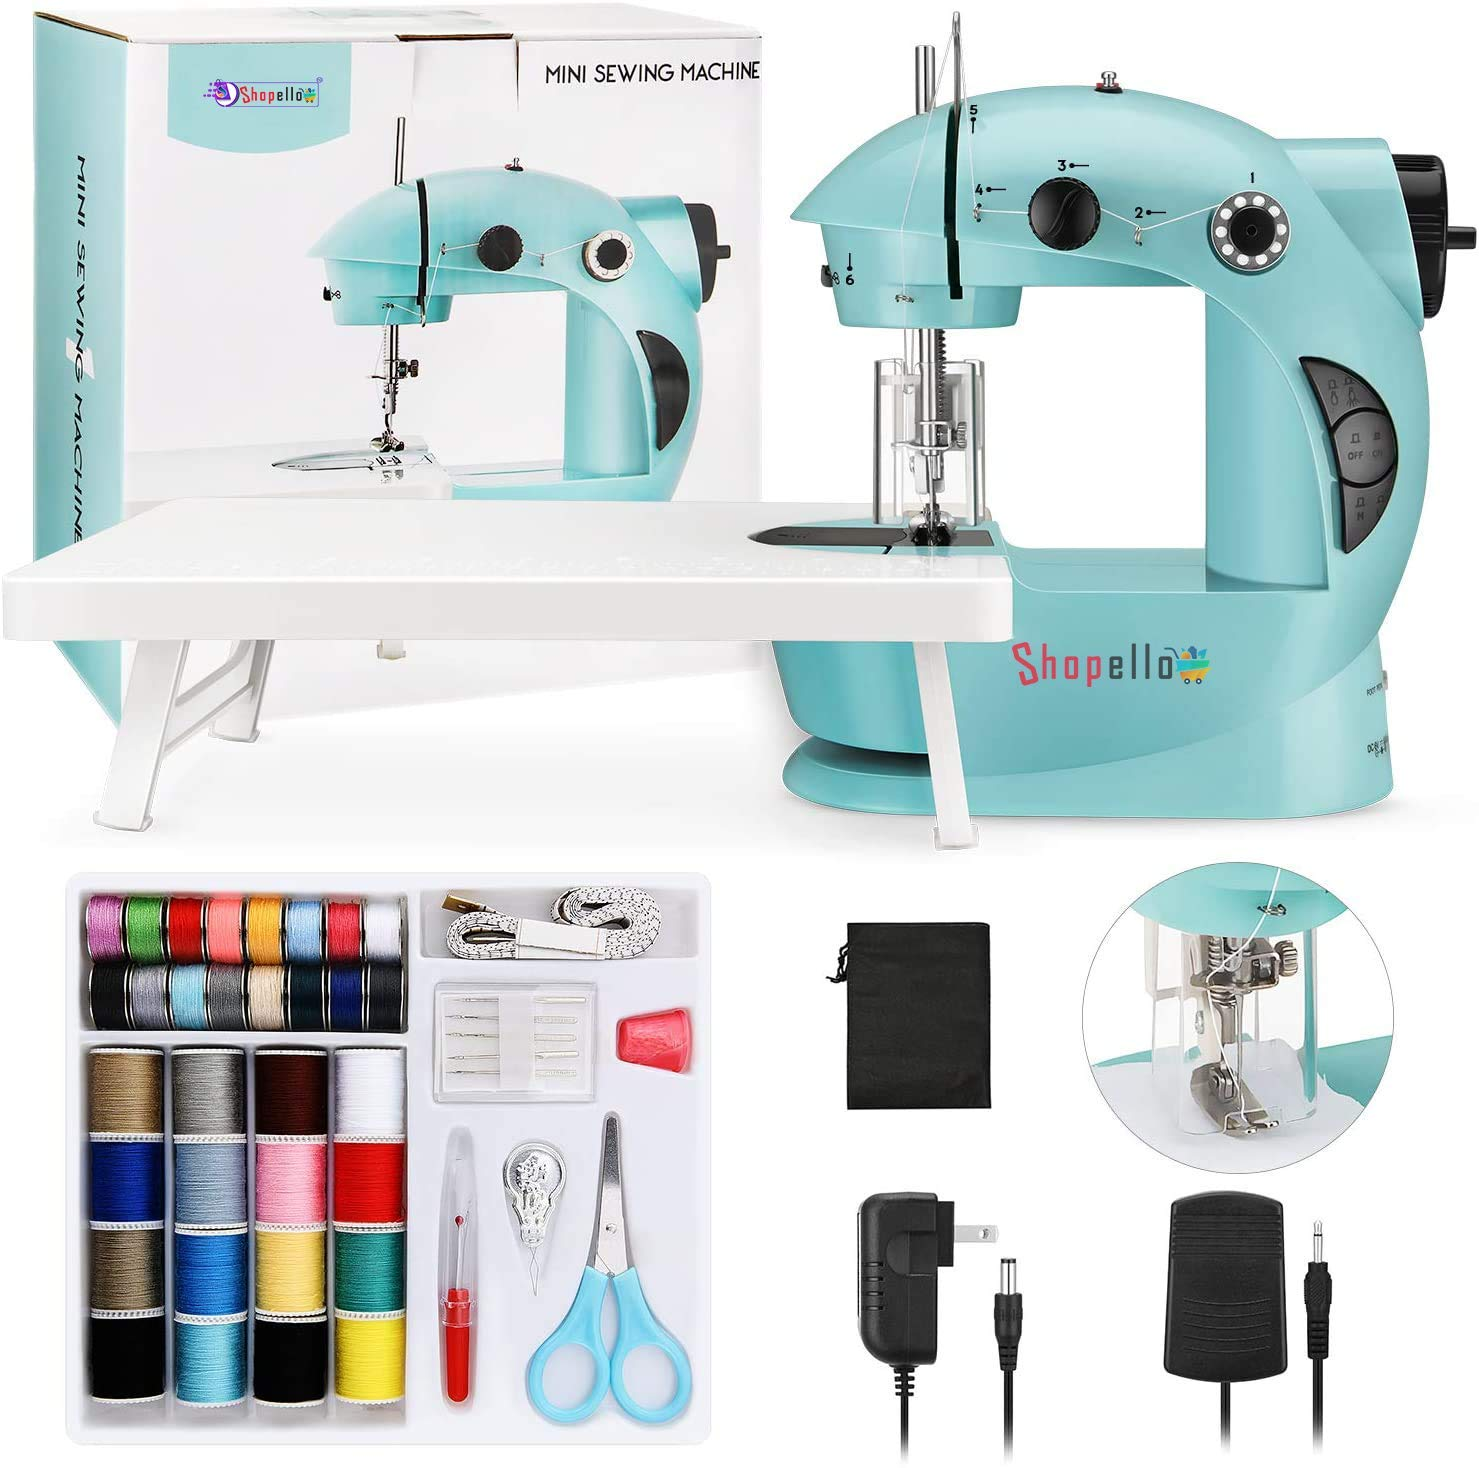 SHOPELLO™ Multi Electric Mini 4 in 1 Desktop Functional Household Sewing Machine